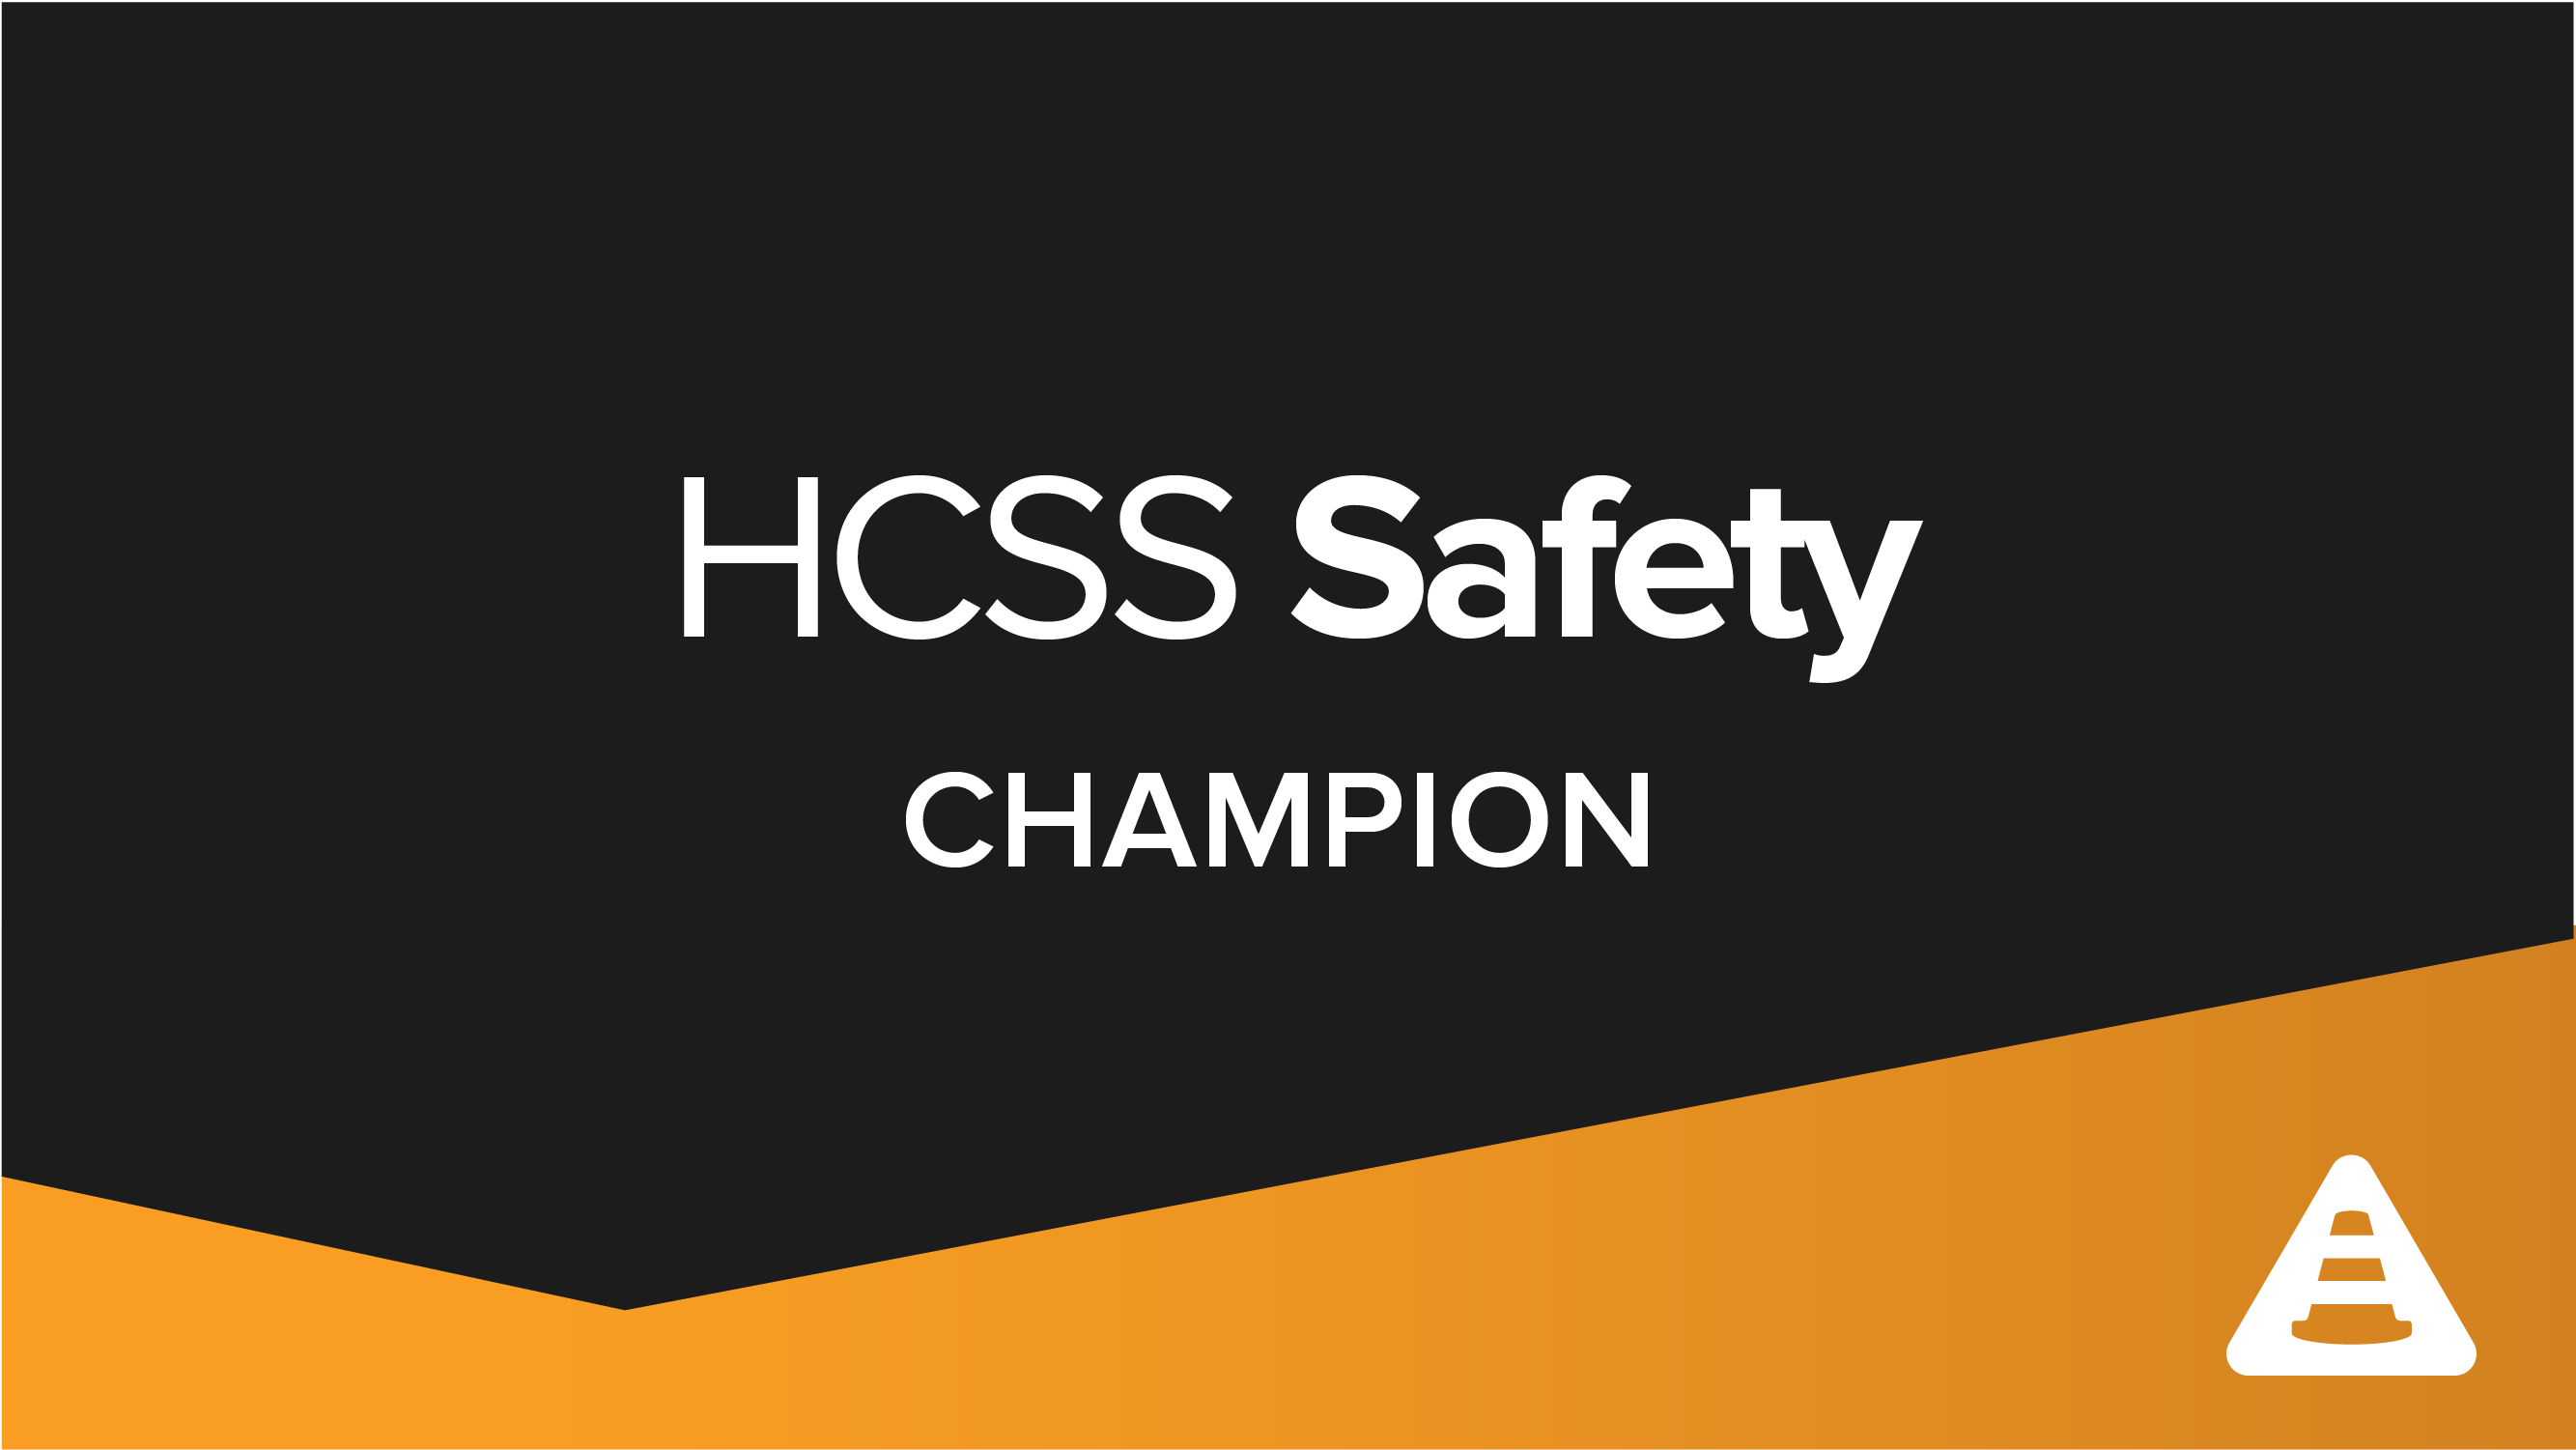 Implementation for Safety Champions